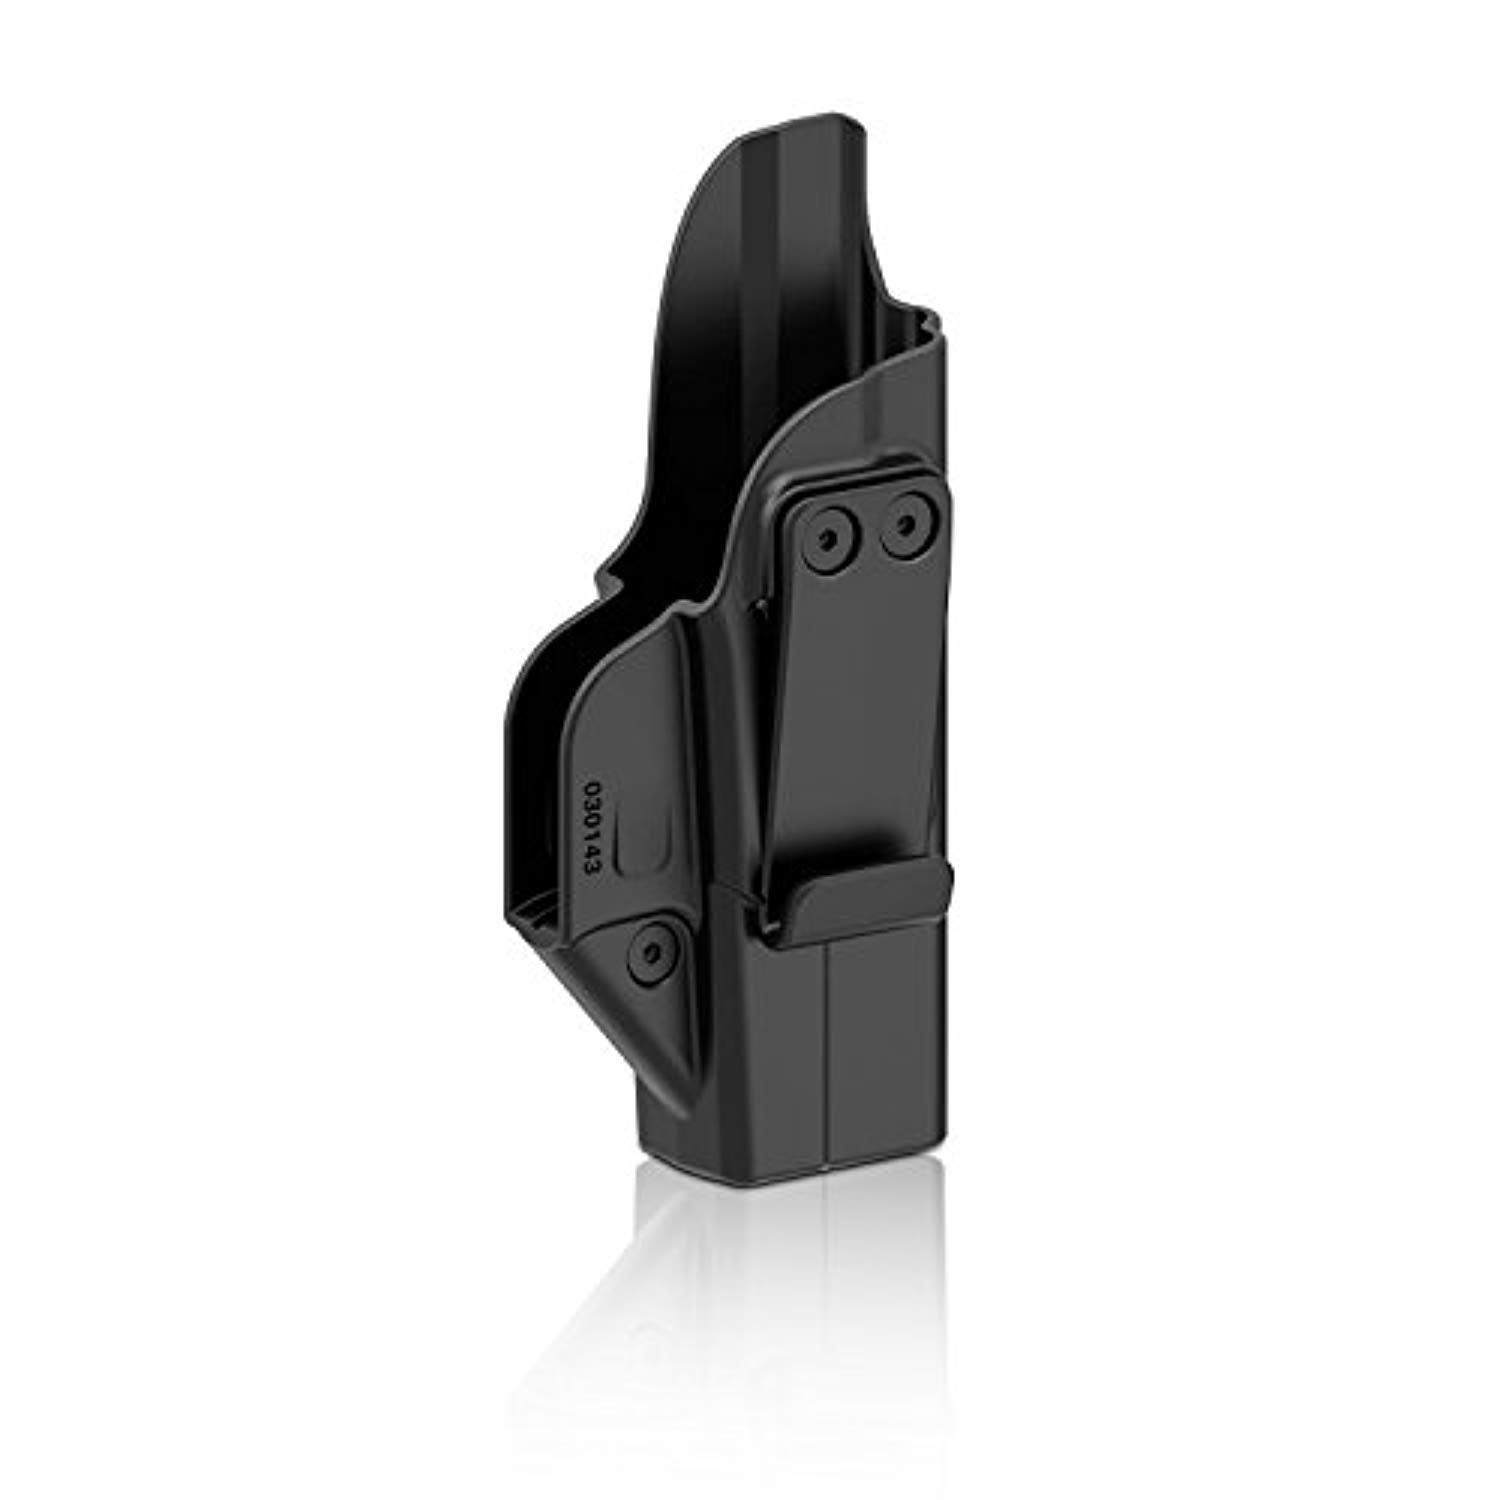 efluky Glock 43 Holster, Polymer Tactical Inside Waistband Concealed Carry Holster with Belt Clip, Adj. Retention, RH (Black)